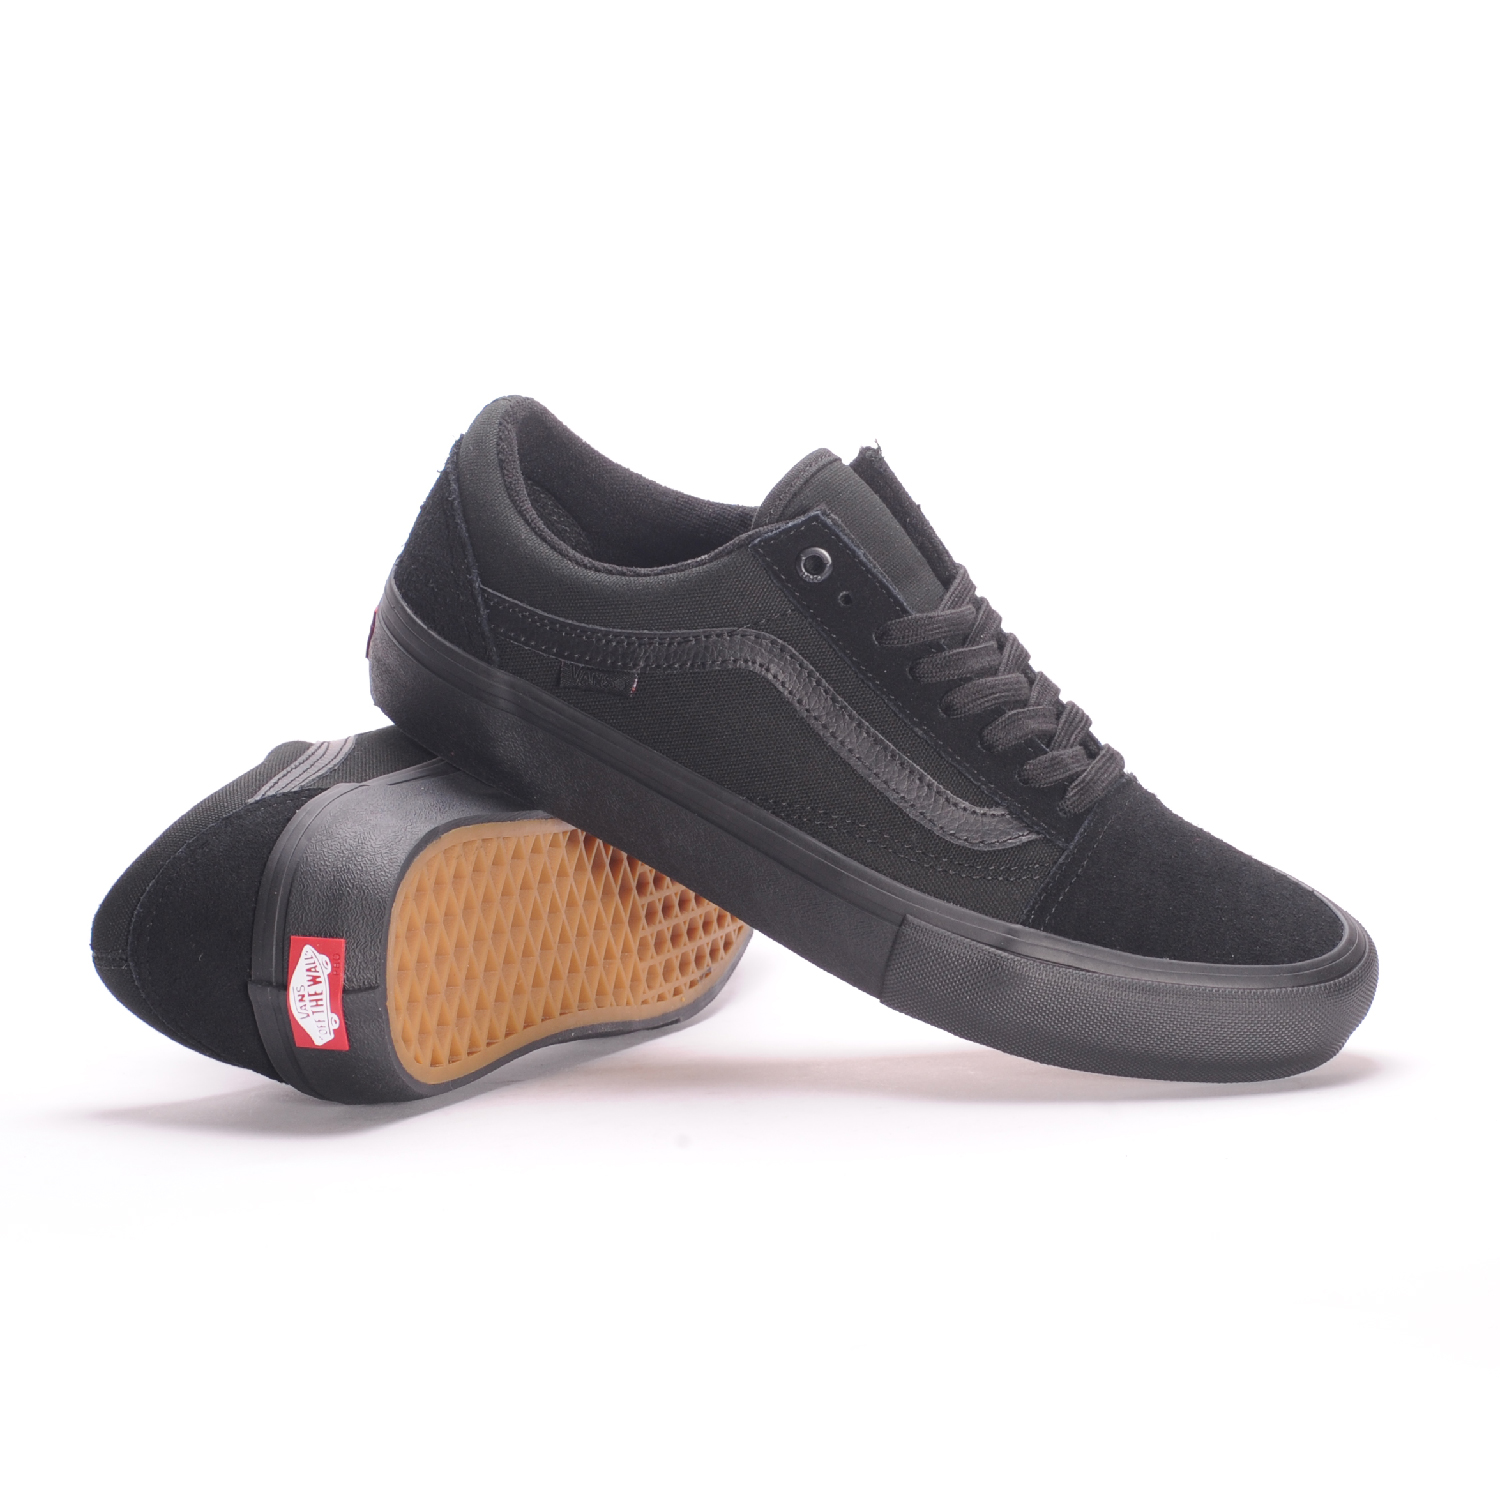 Vans Old Skool Pro (Blackout) Men's Skate Shoes